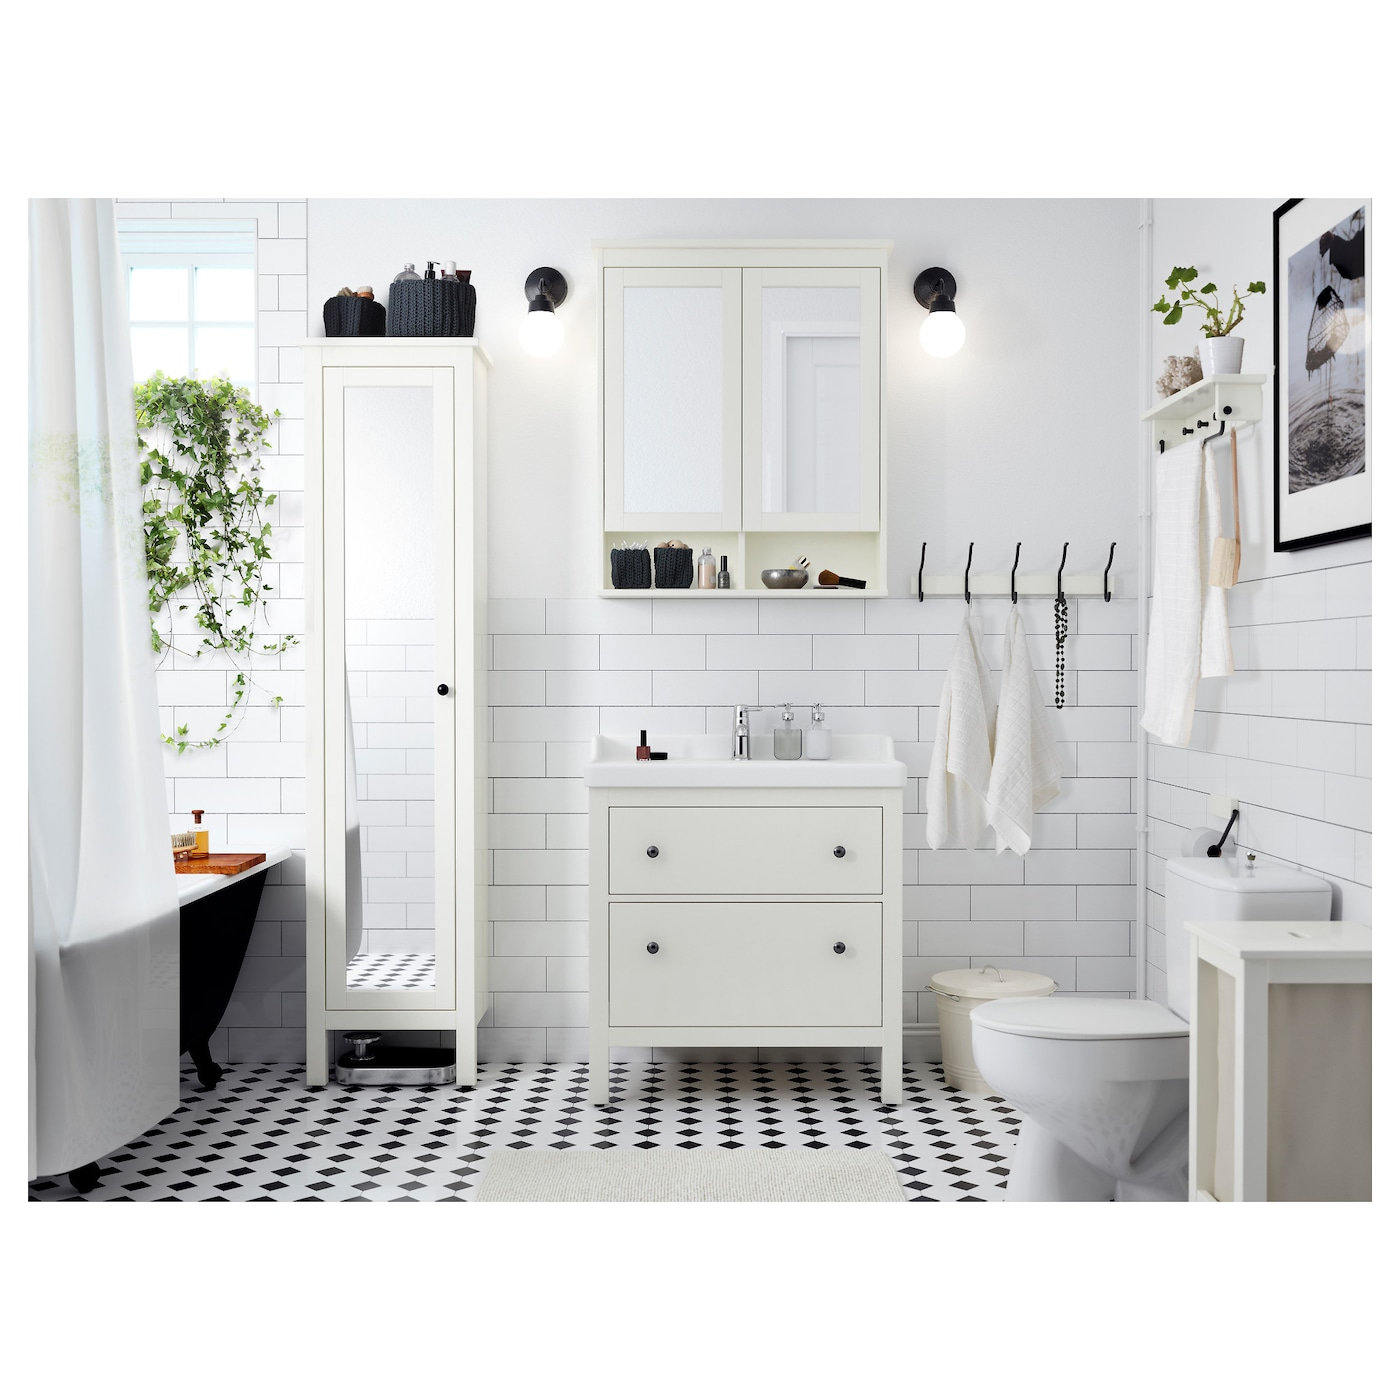 Hemnes mirror cabinet with 2 doors white 83x16x98 cm ikea for Salle de bain 4m2 ikea